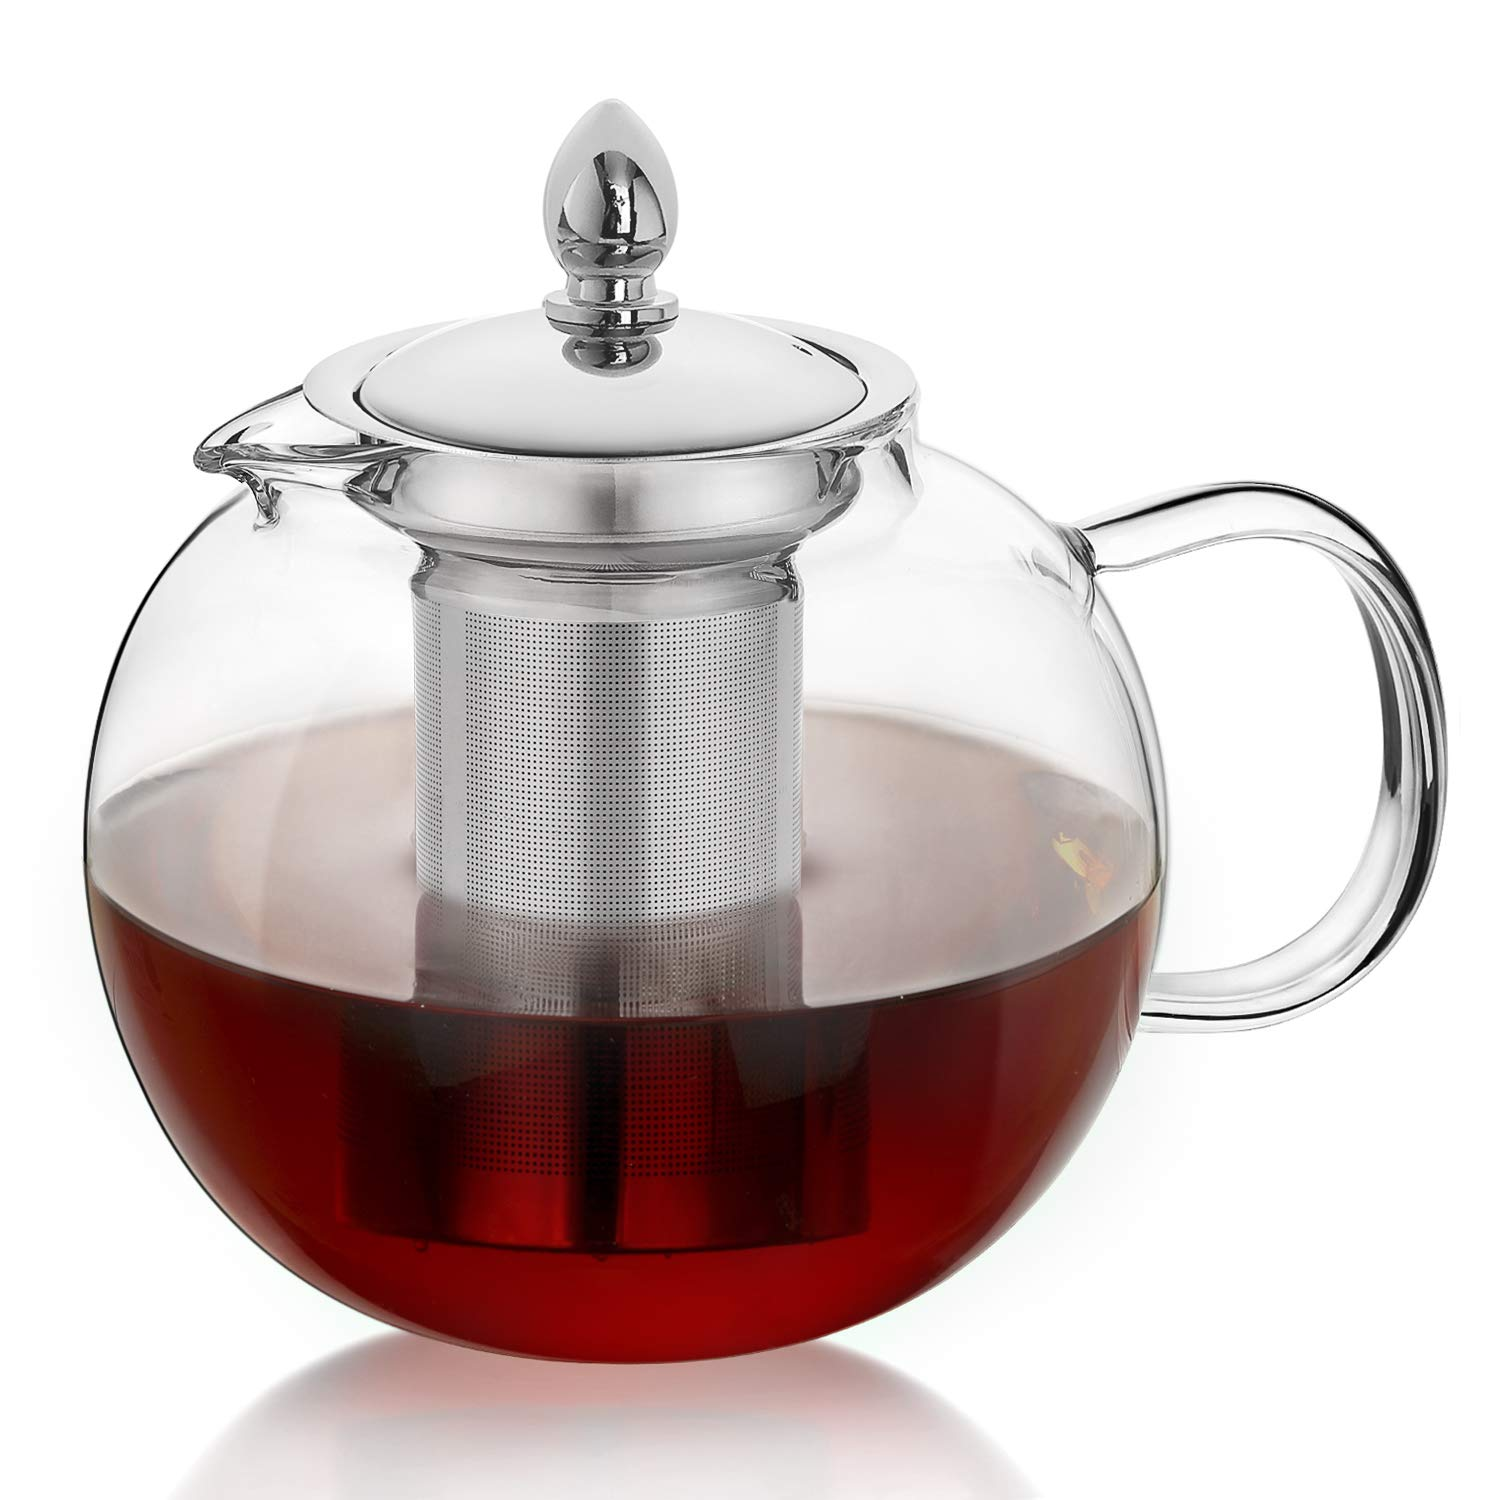 Hiware Glass Teapot Kettle with Infuser, Removable Tea Strainer, 45oz Large Microwavable and Stovetop Safe Tea Maker, Blooming & Loose Leaf Tea Pot Set by Hiware